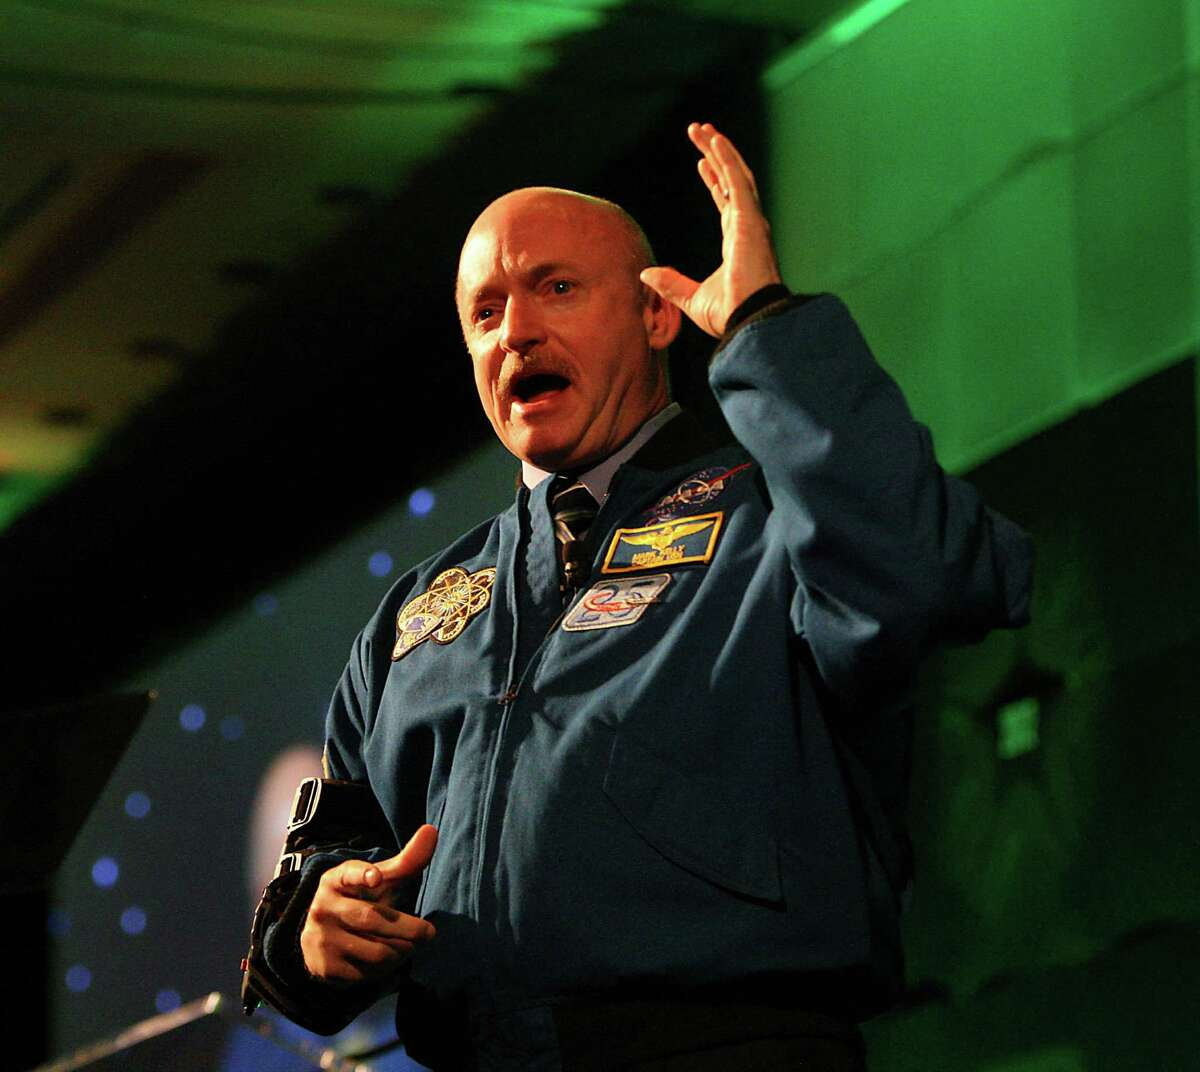 Commander Mark Kelly delivers the keynote speech during the 2012 H-E-B Excellence in Education Awards at the InterContinental Hotel, Sunday, May 6, 2012, in Houston. Now in its 11th year, the program added a new Early Childhood Award to support public and private schools and not-for-profit learning agencies that focus on kinder readiness and the care of children under five.